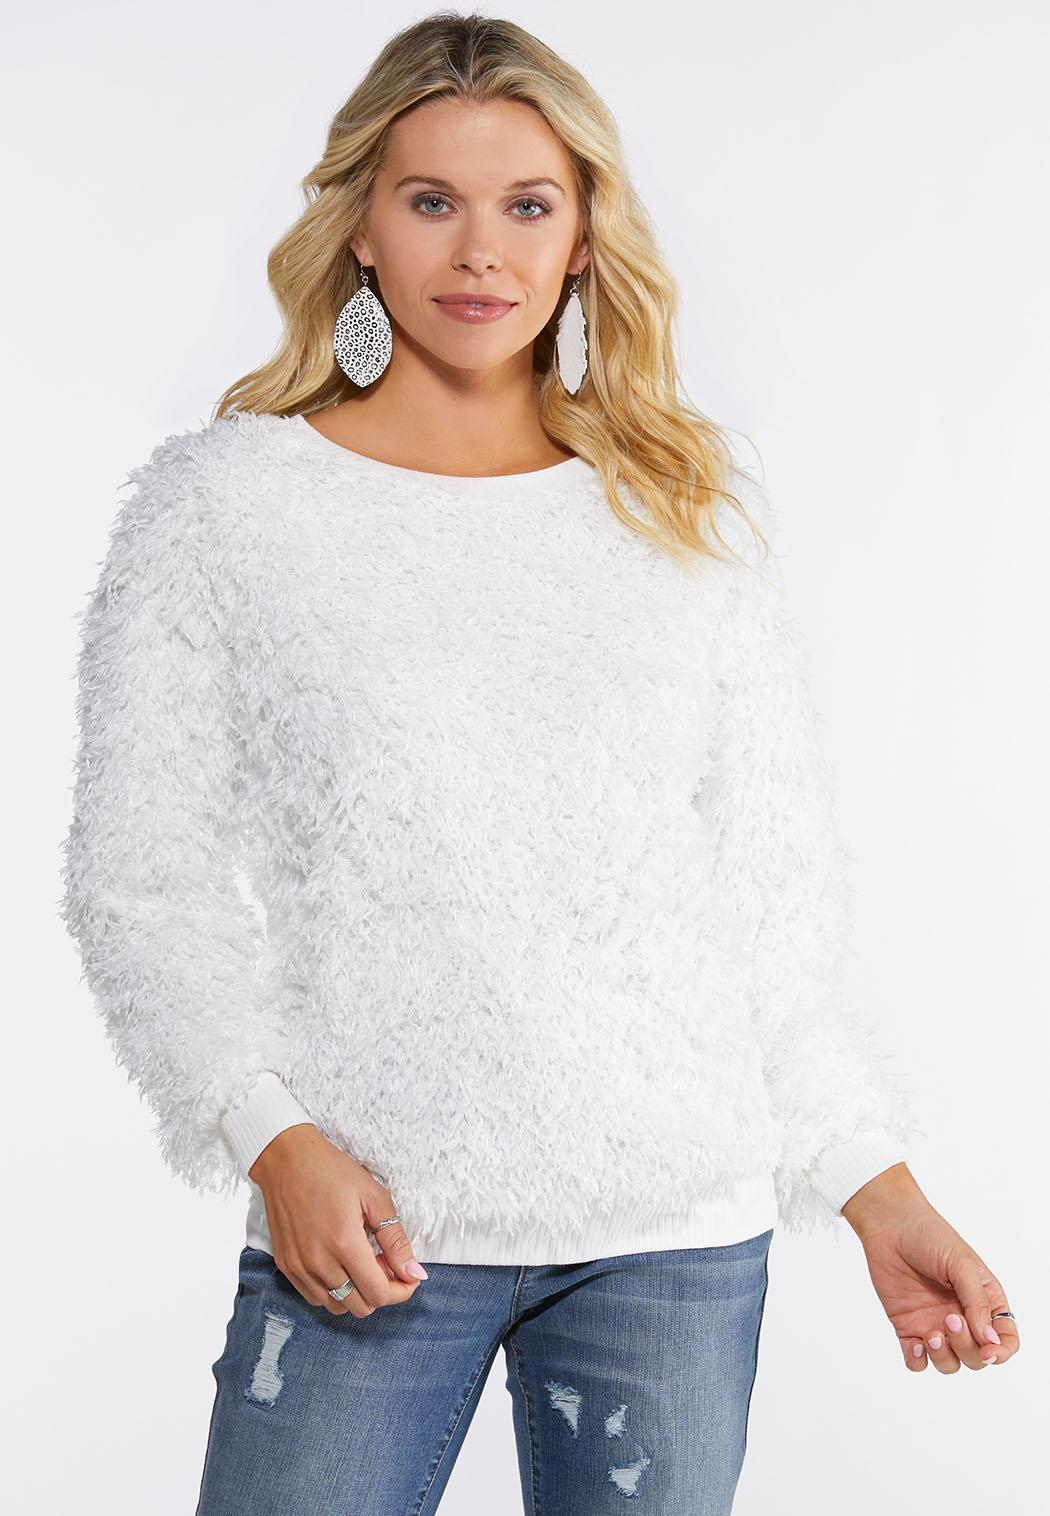 Plus Size Fluffy Ivory Scoop Neck Top